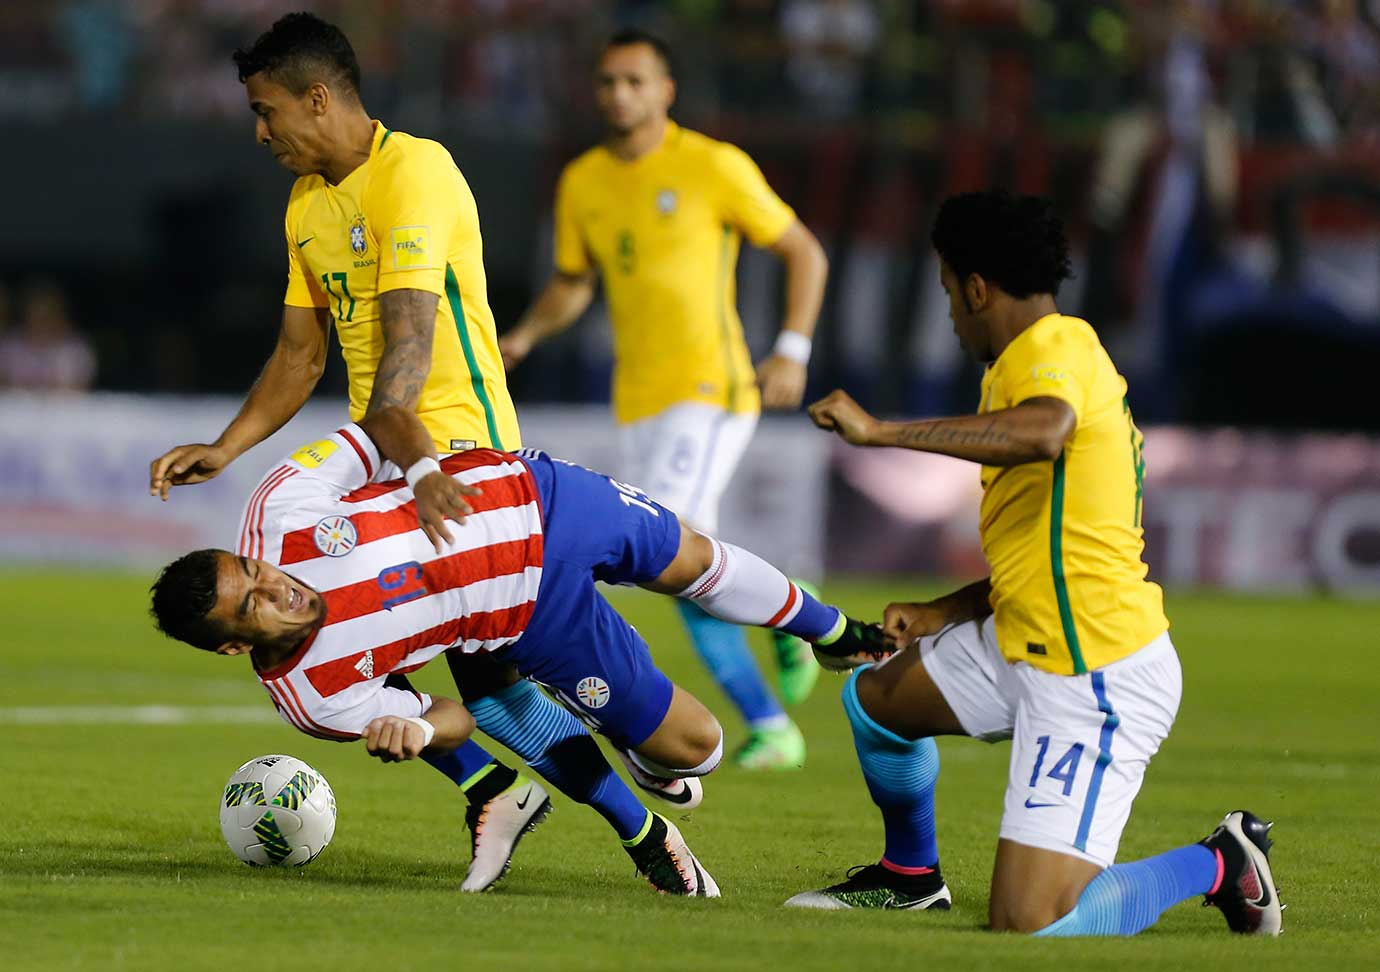 Dario Lezcano of Paraguay falls as he fights for the ball with Luiz Gustavo and Gil of Brazil during a World Cup qualifying match.